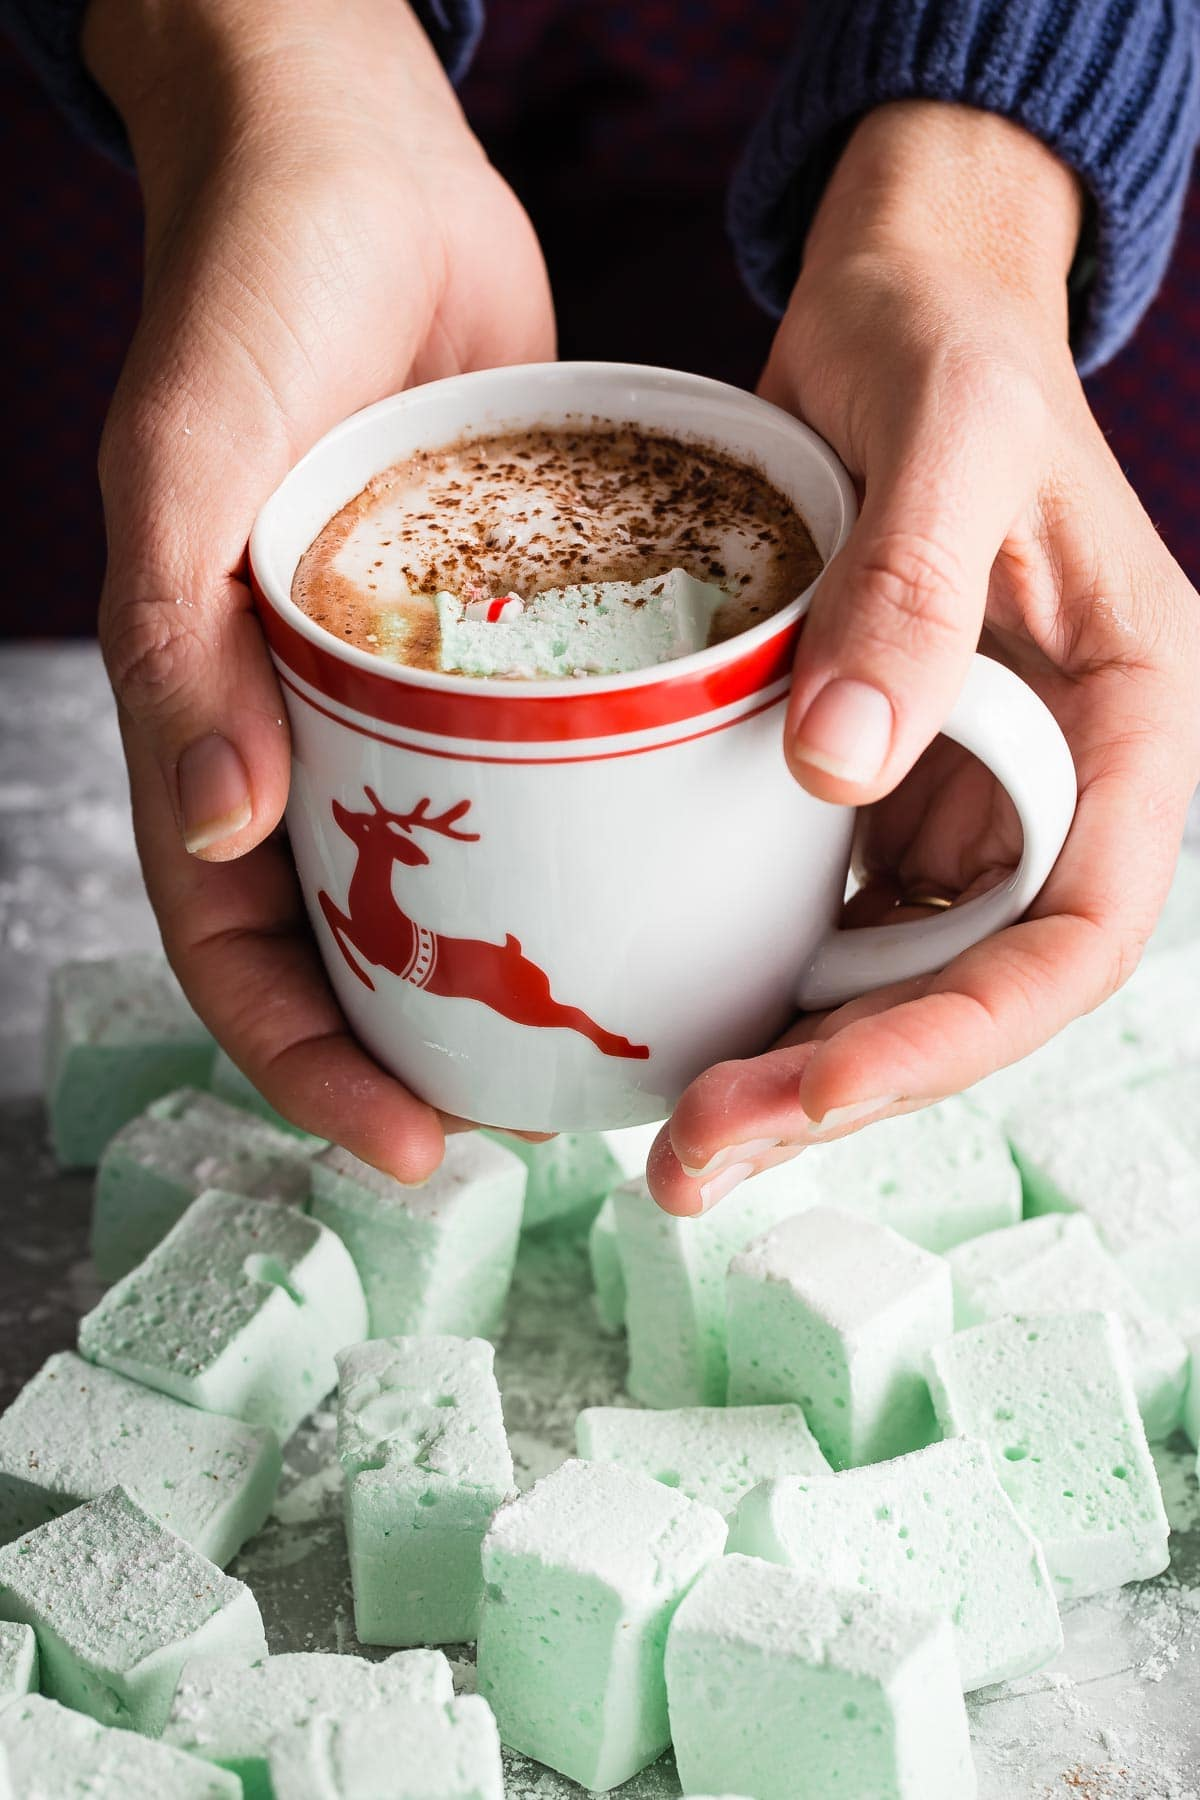 Yummy homemade Peppermint Marshmallows tossed in powdered sugar and ready to eat just on their own, or dropped into a steaming hot mug of hot chocolate! Top with crushed candy cane and cocoa powder.